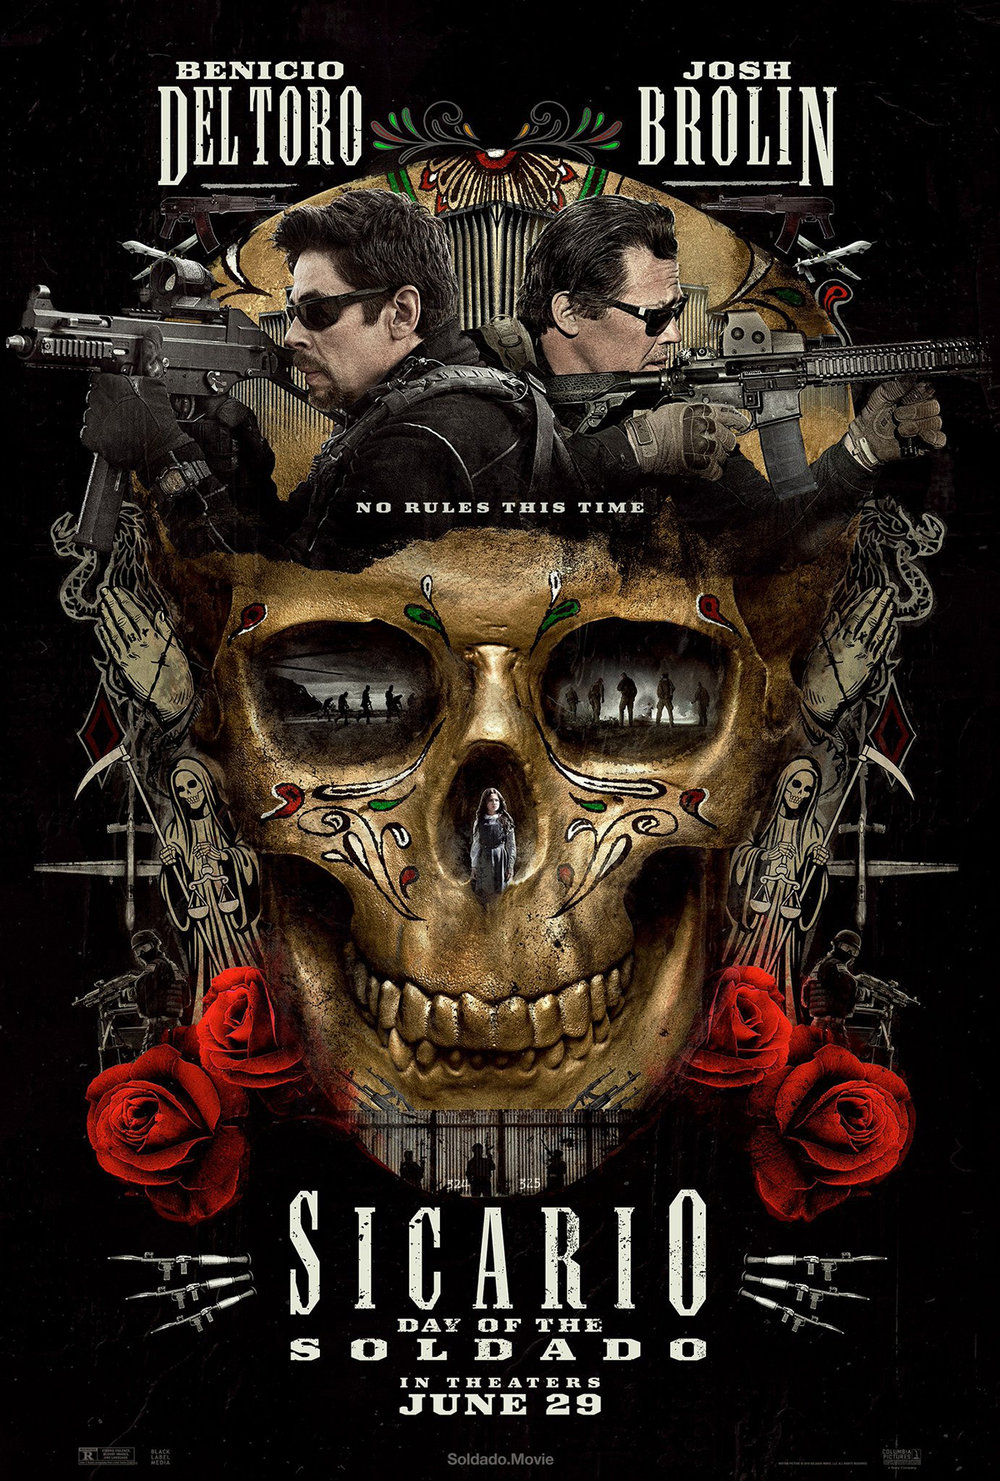 Sicario-Day-of-the-Soldado-poster.jpg